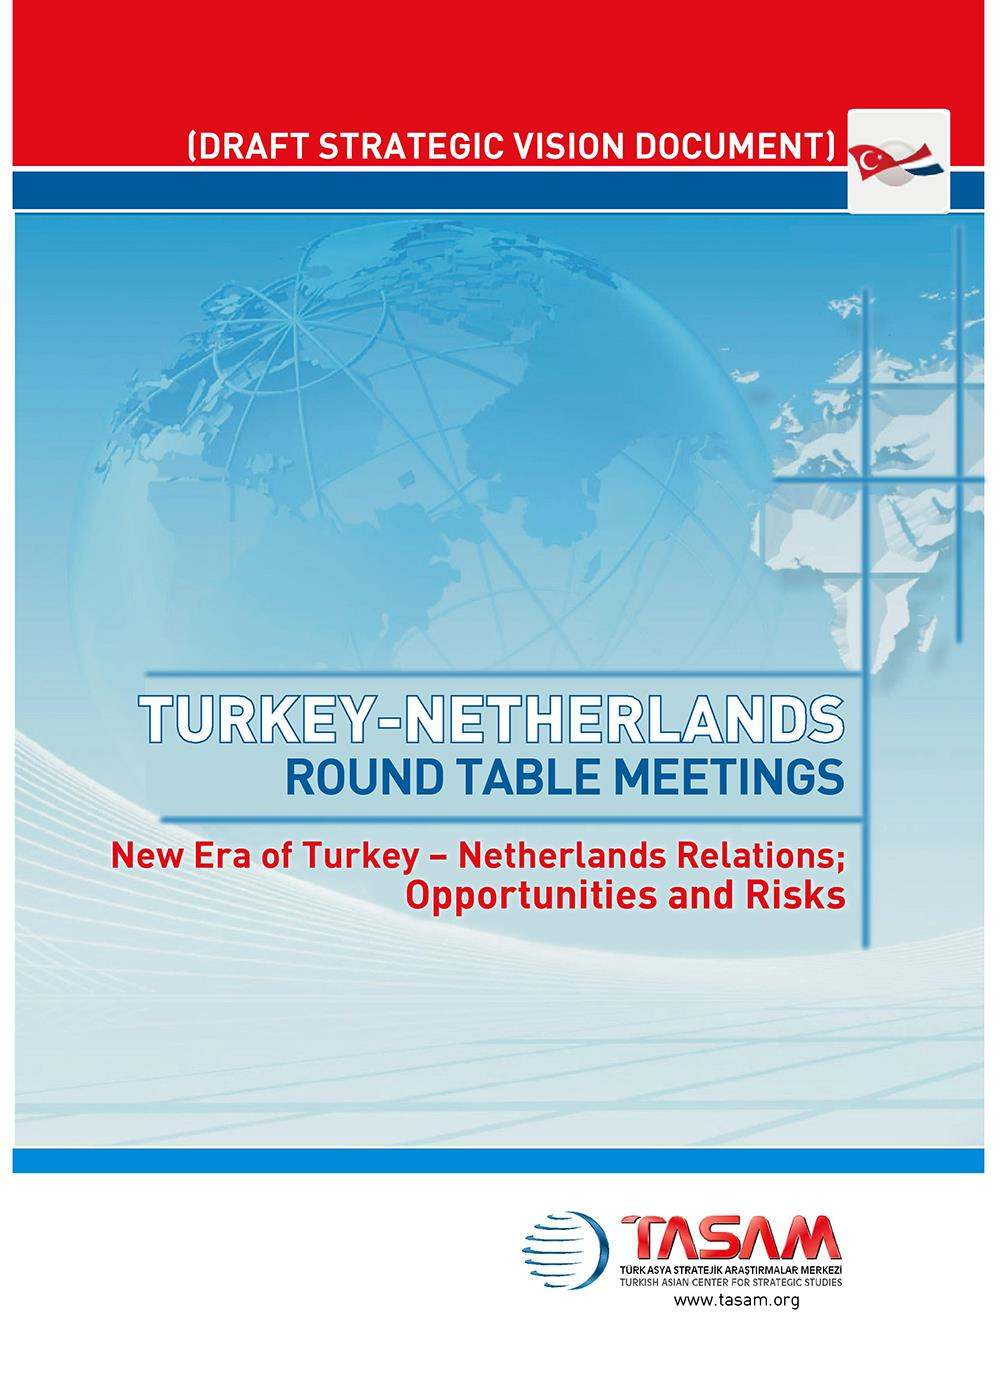 Turkey - Netherland Round Table Meeting - 1